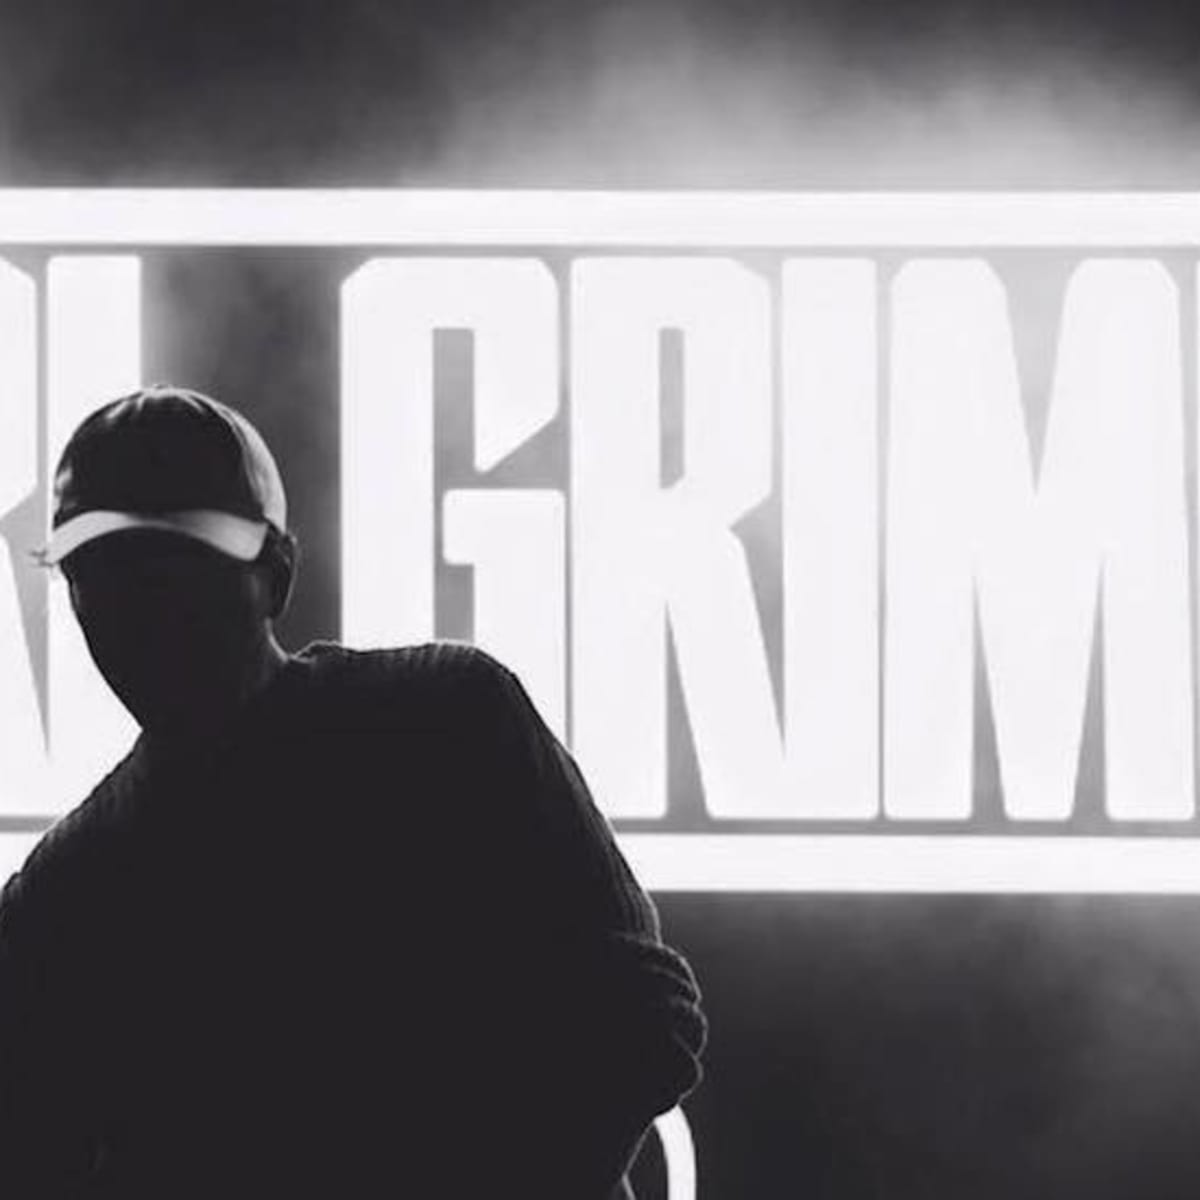 Rl Grime Halloween Mix 2020 Release Date RL Grime Just Revealed The Release Date For His Annual Halloween